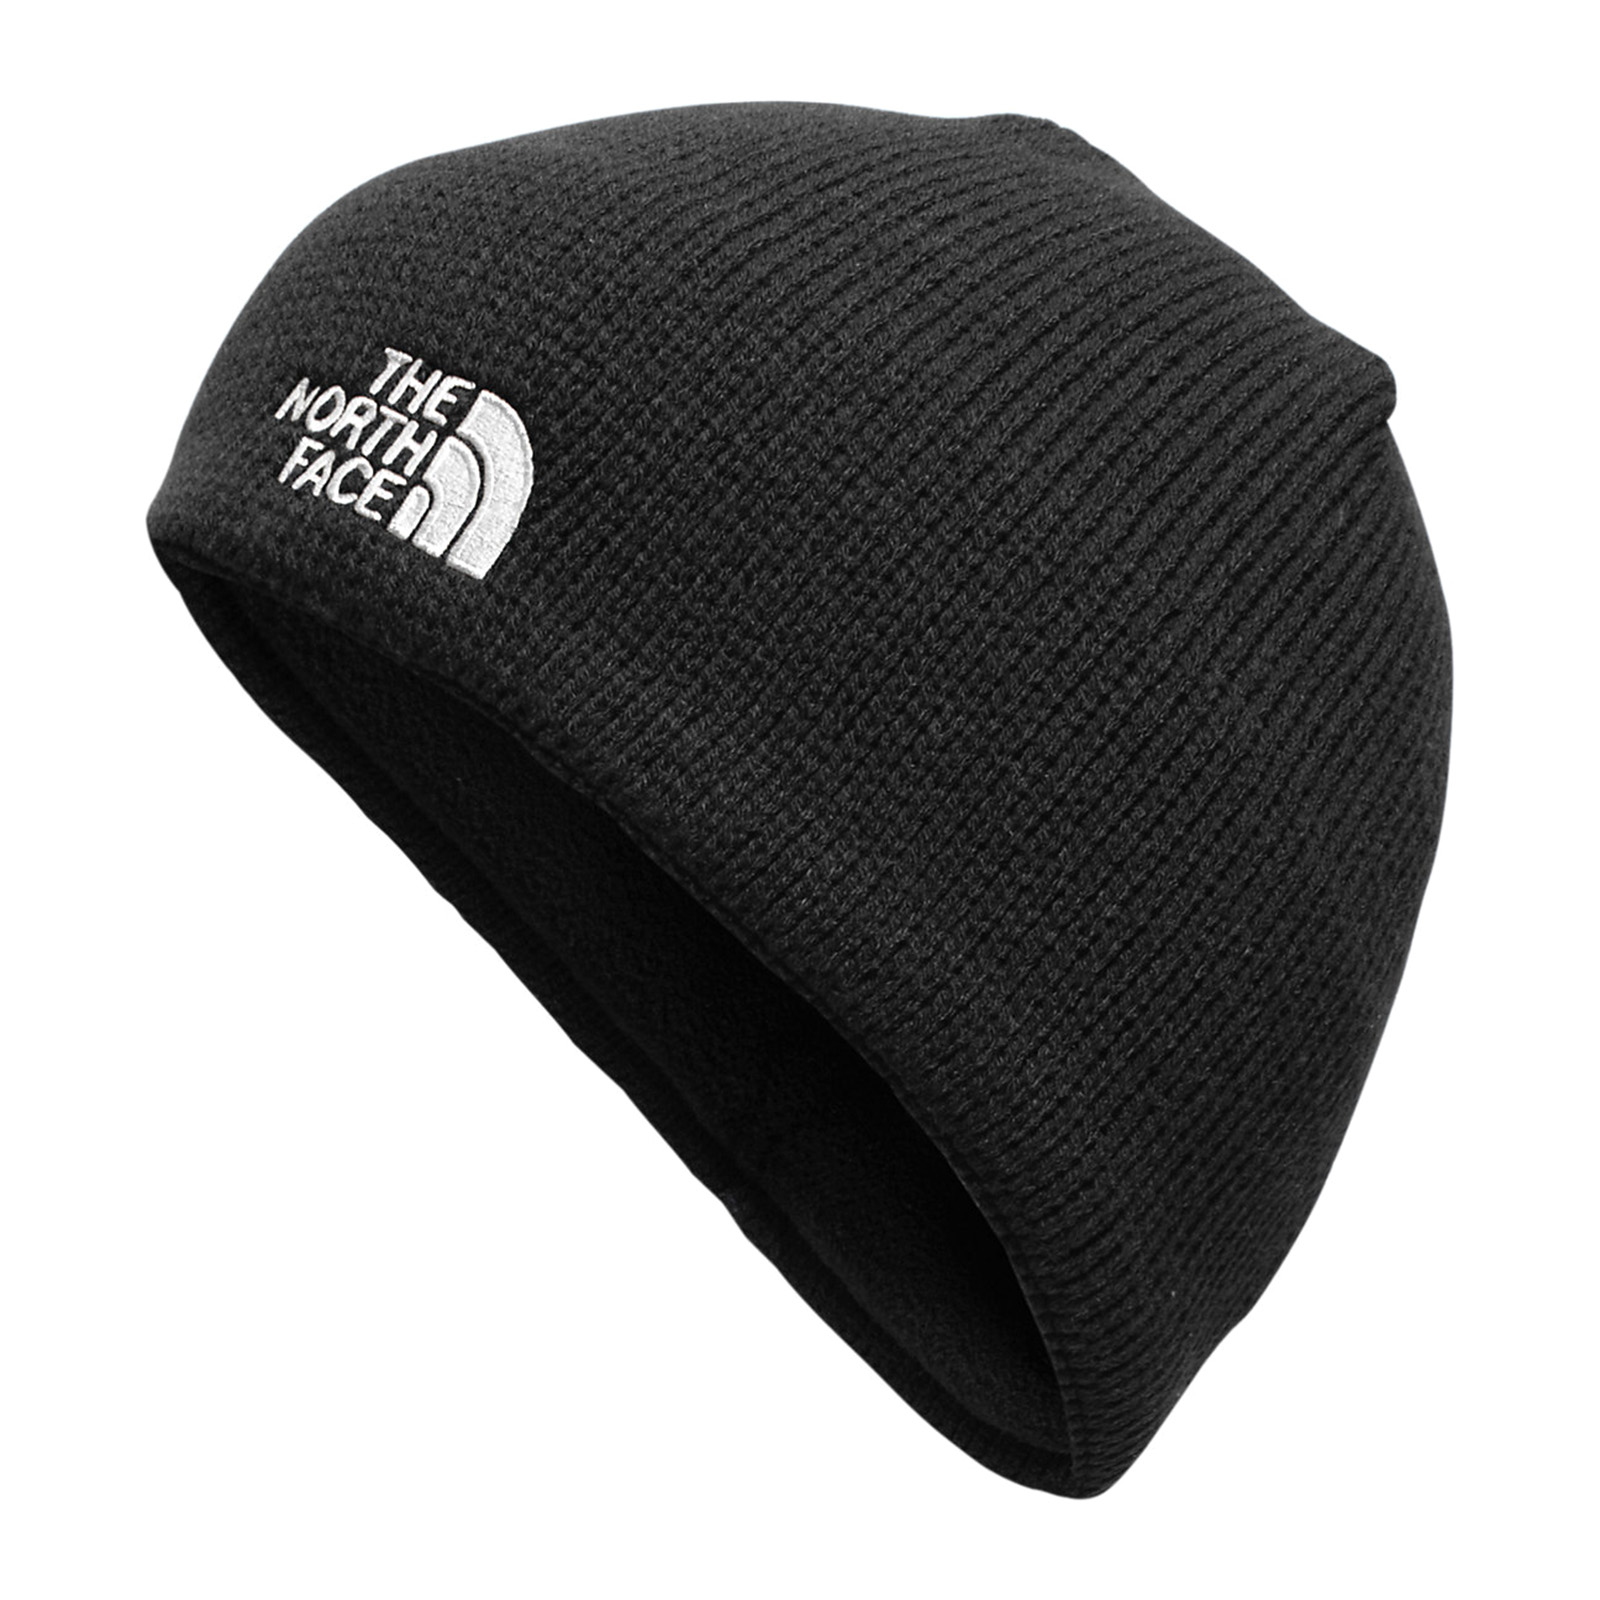 852516759a2 The North Face Bones Beanie Hat - TNF Black for sale online